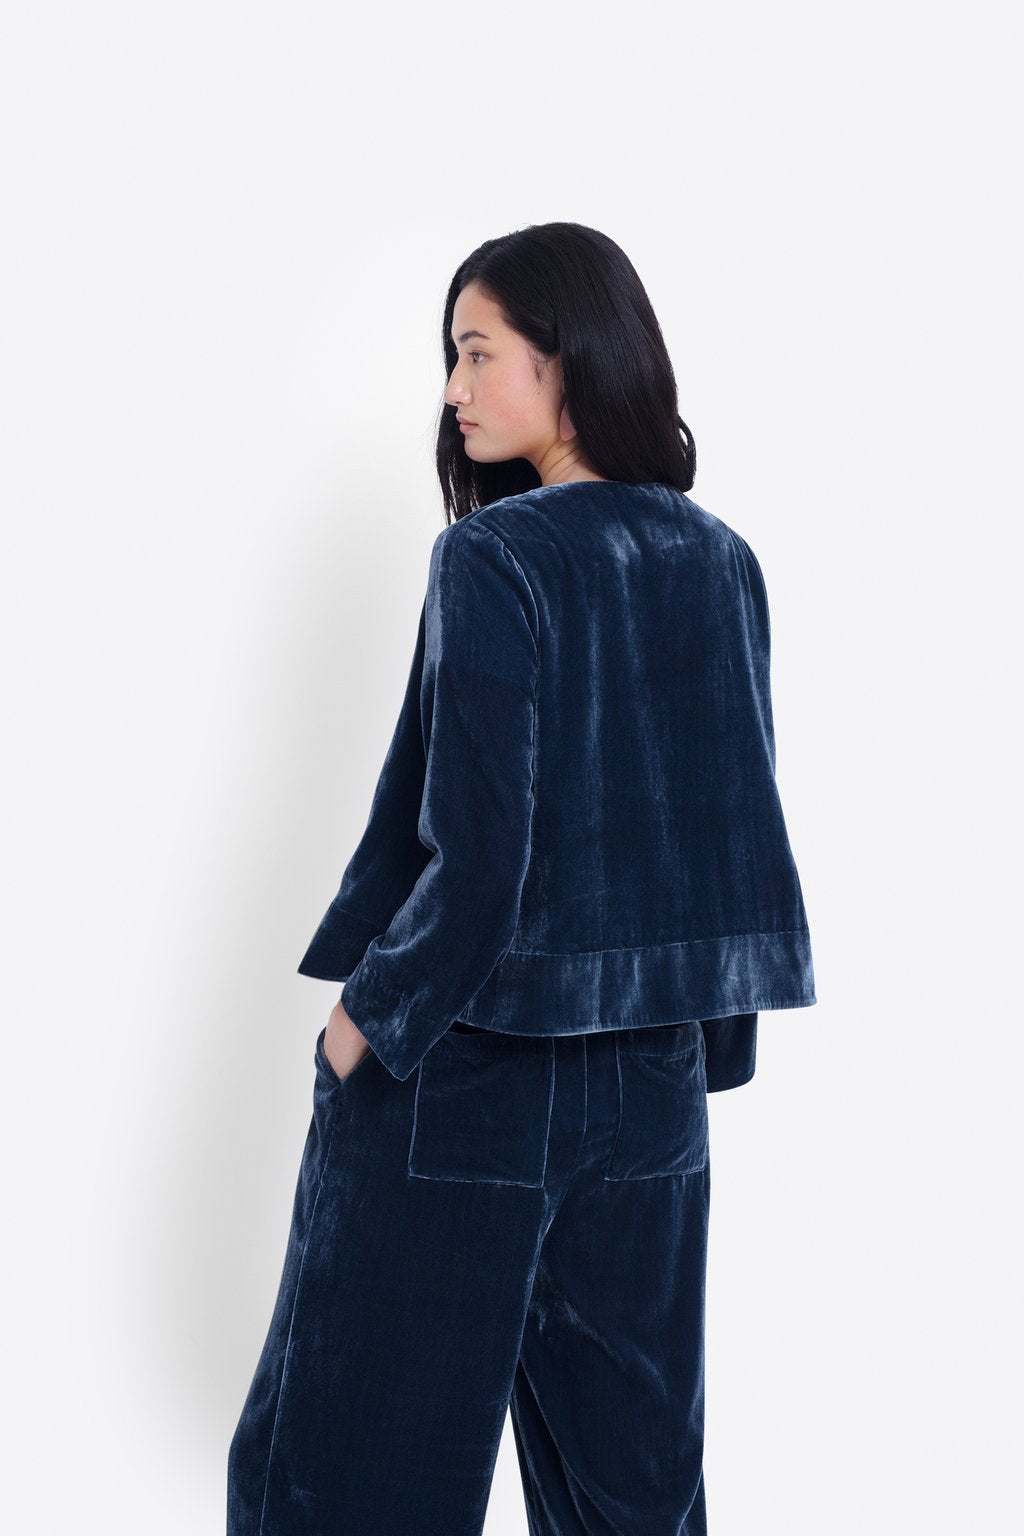 ELK The Label - Luxe Velvet Jacket online at PAYA boutique